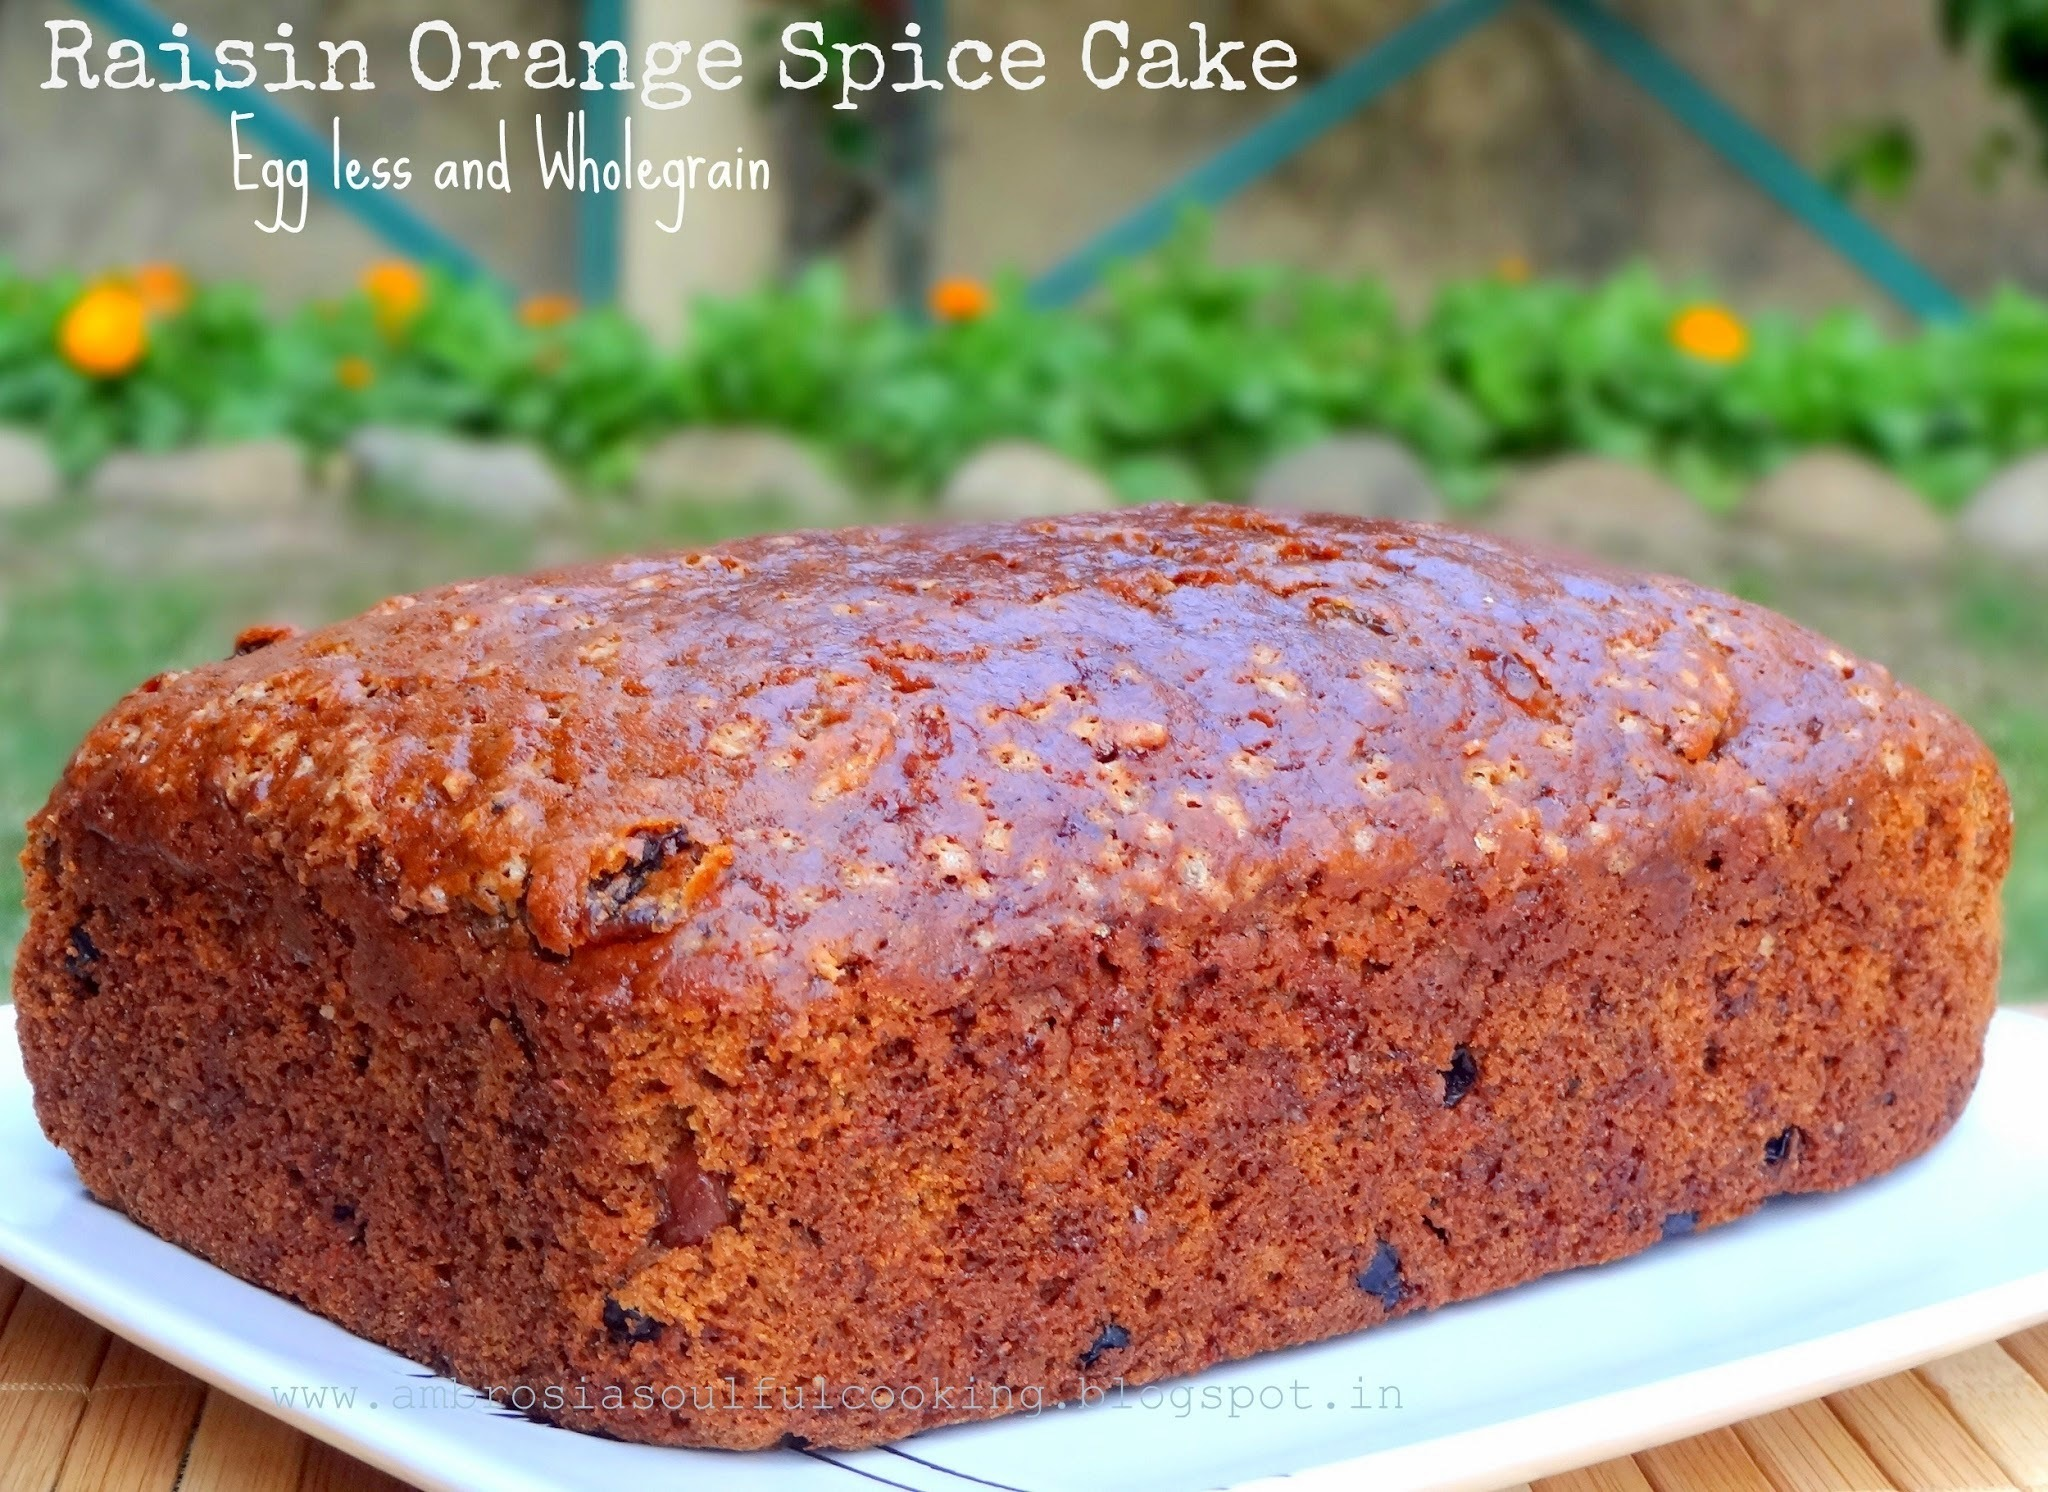 Raisin Orange Spice Cake - Egg less and Wholegrain